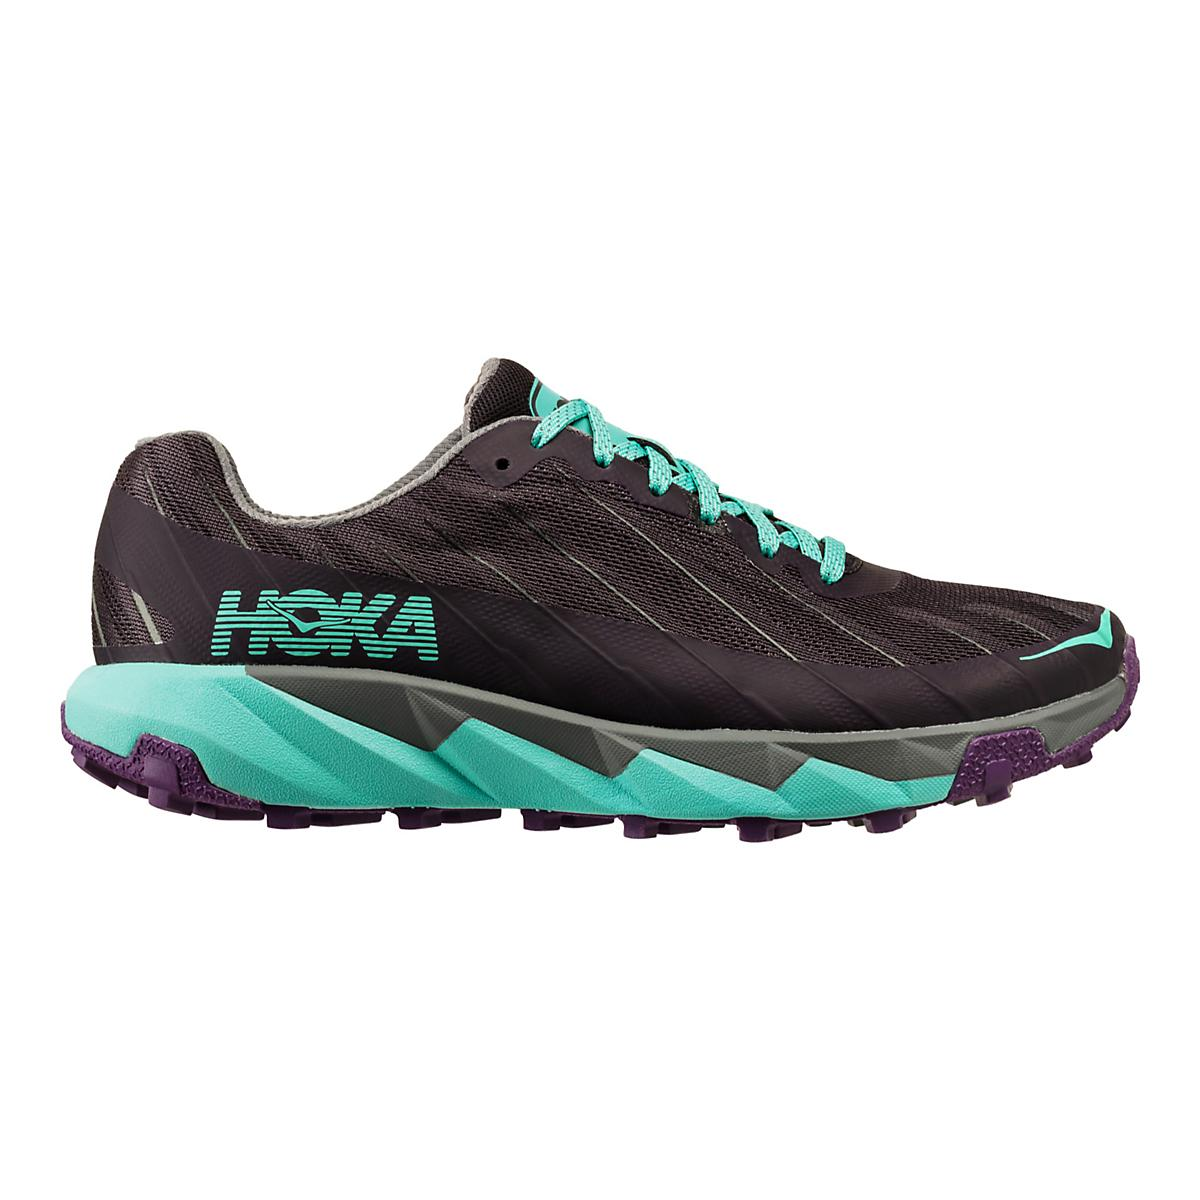 Womens Hoka One One Torrent Trail Running Shoe at Road Runner Sports 7231056f412